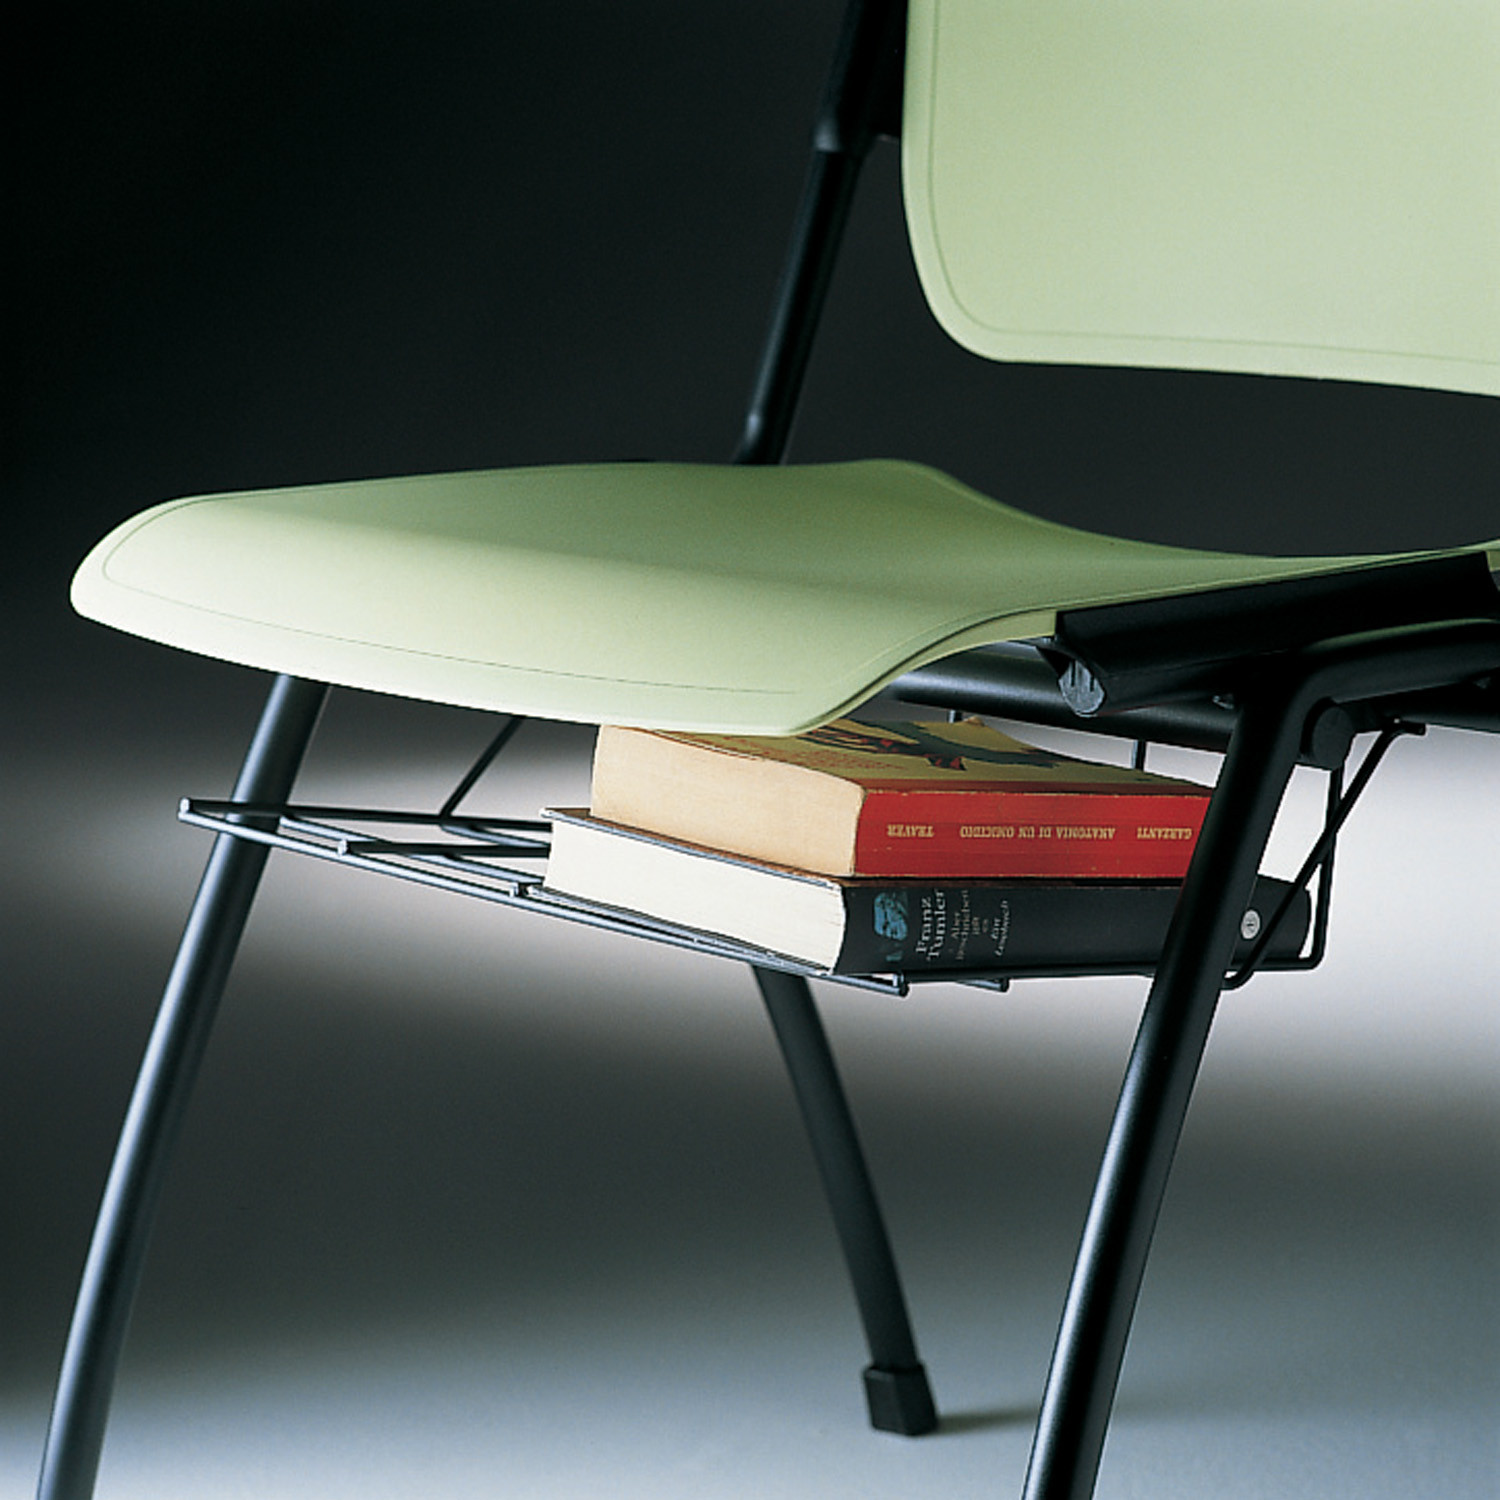 Mimi Chair can be fitted with a book-basket